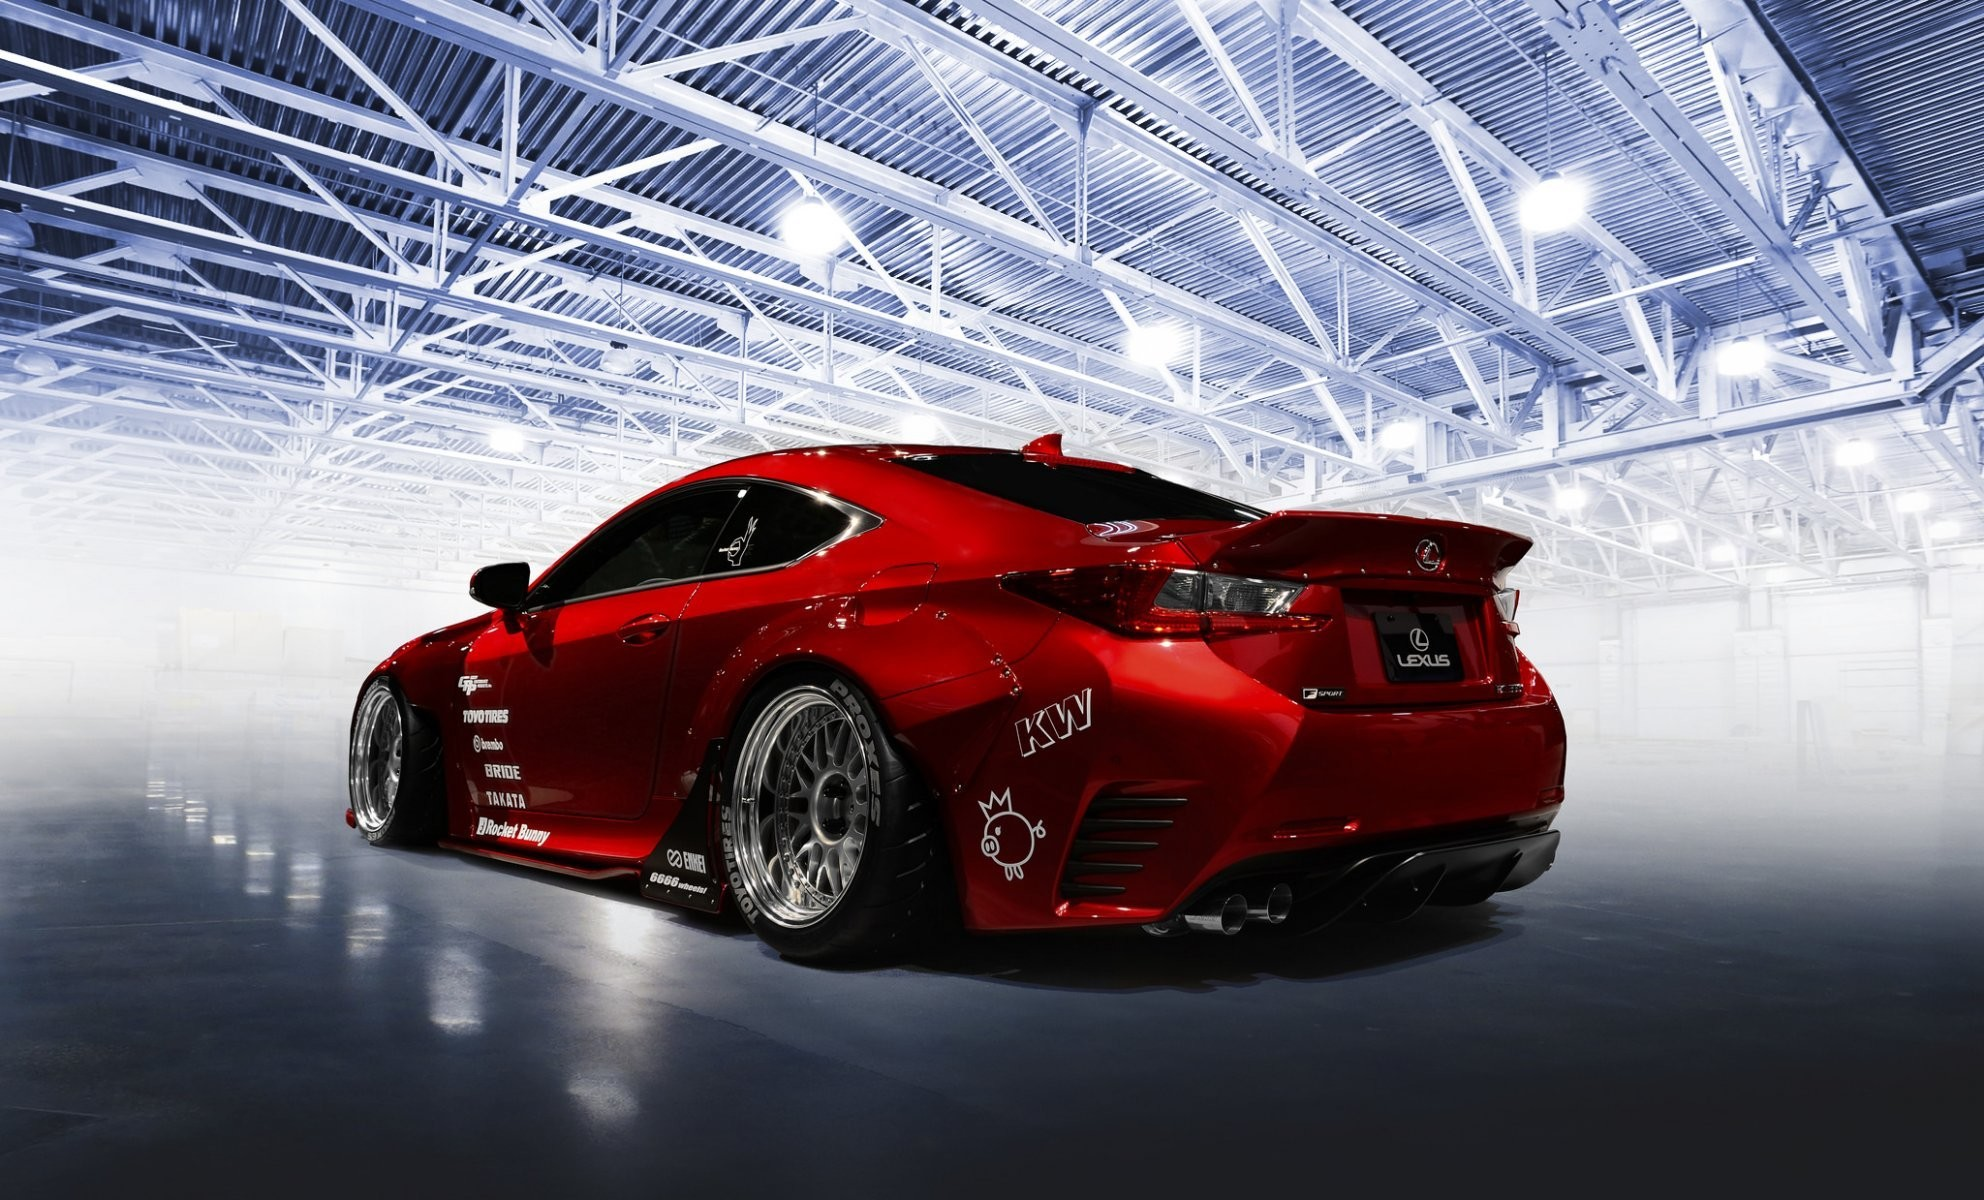 1984x1200 lexus rc-f tuning rocket bunny red car